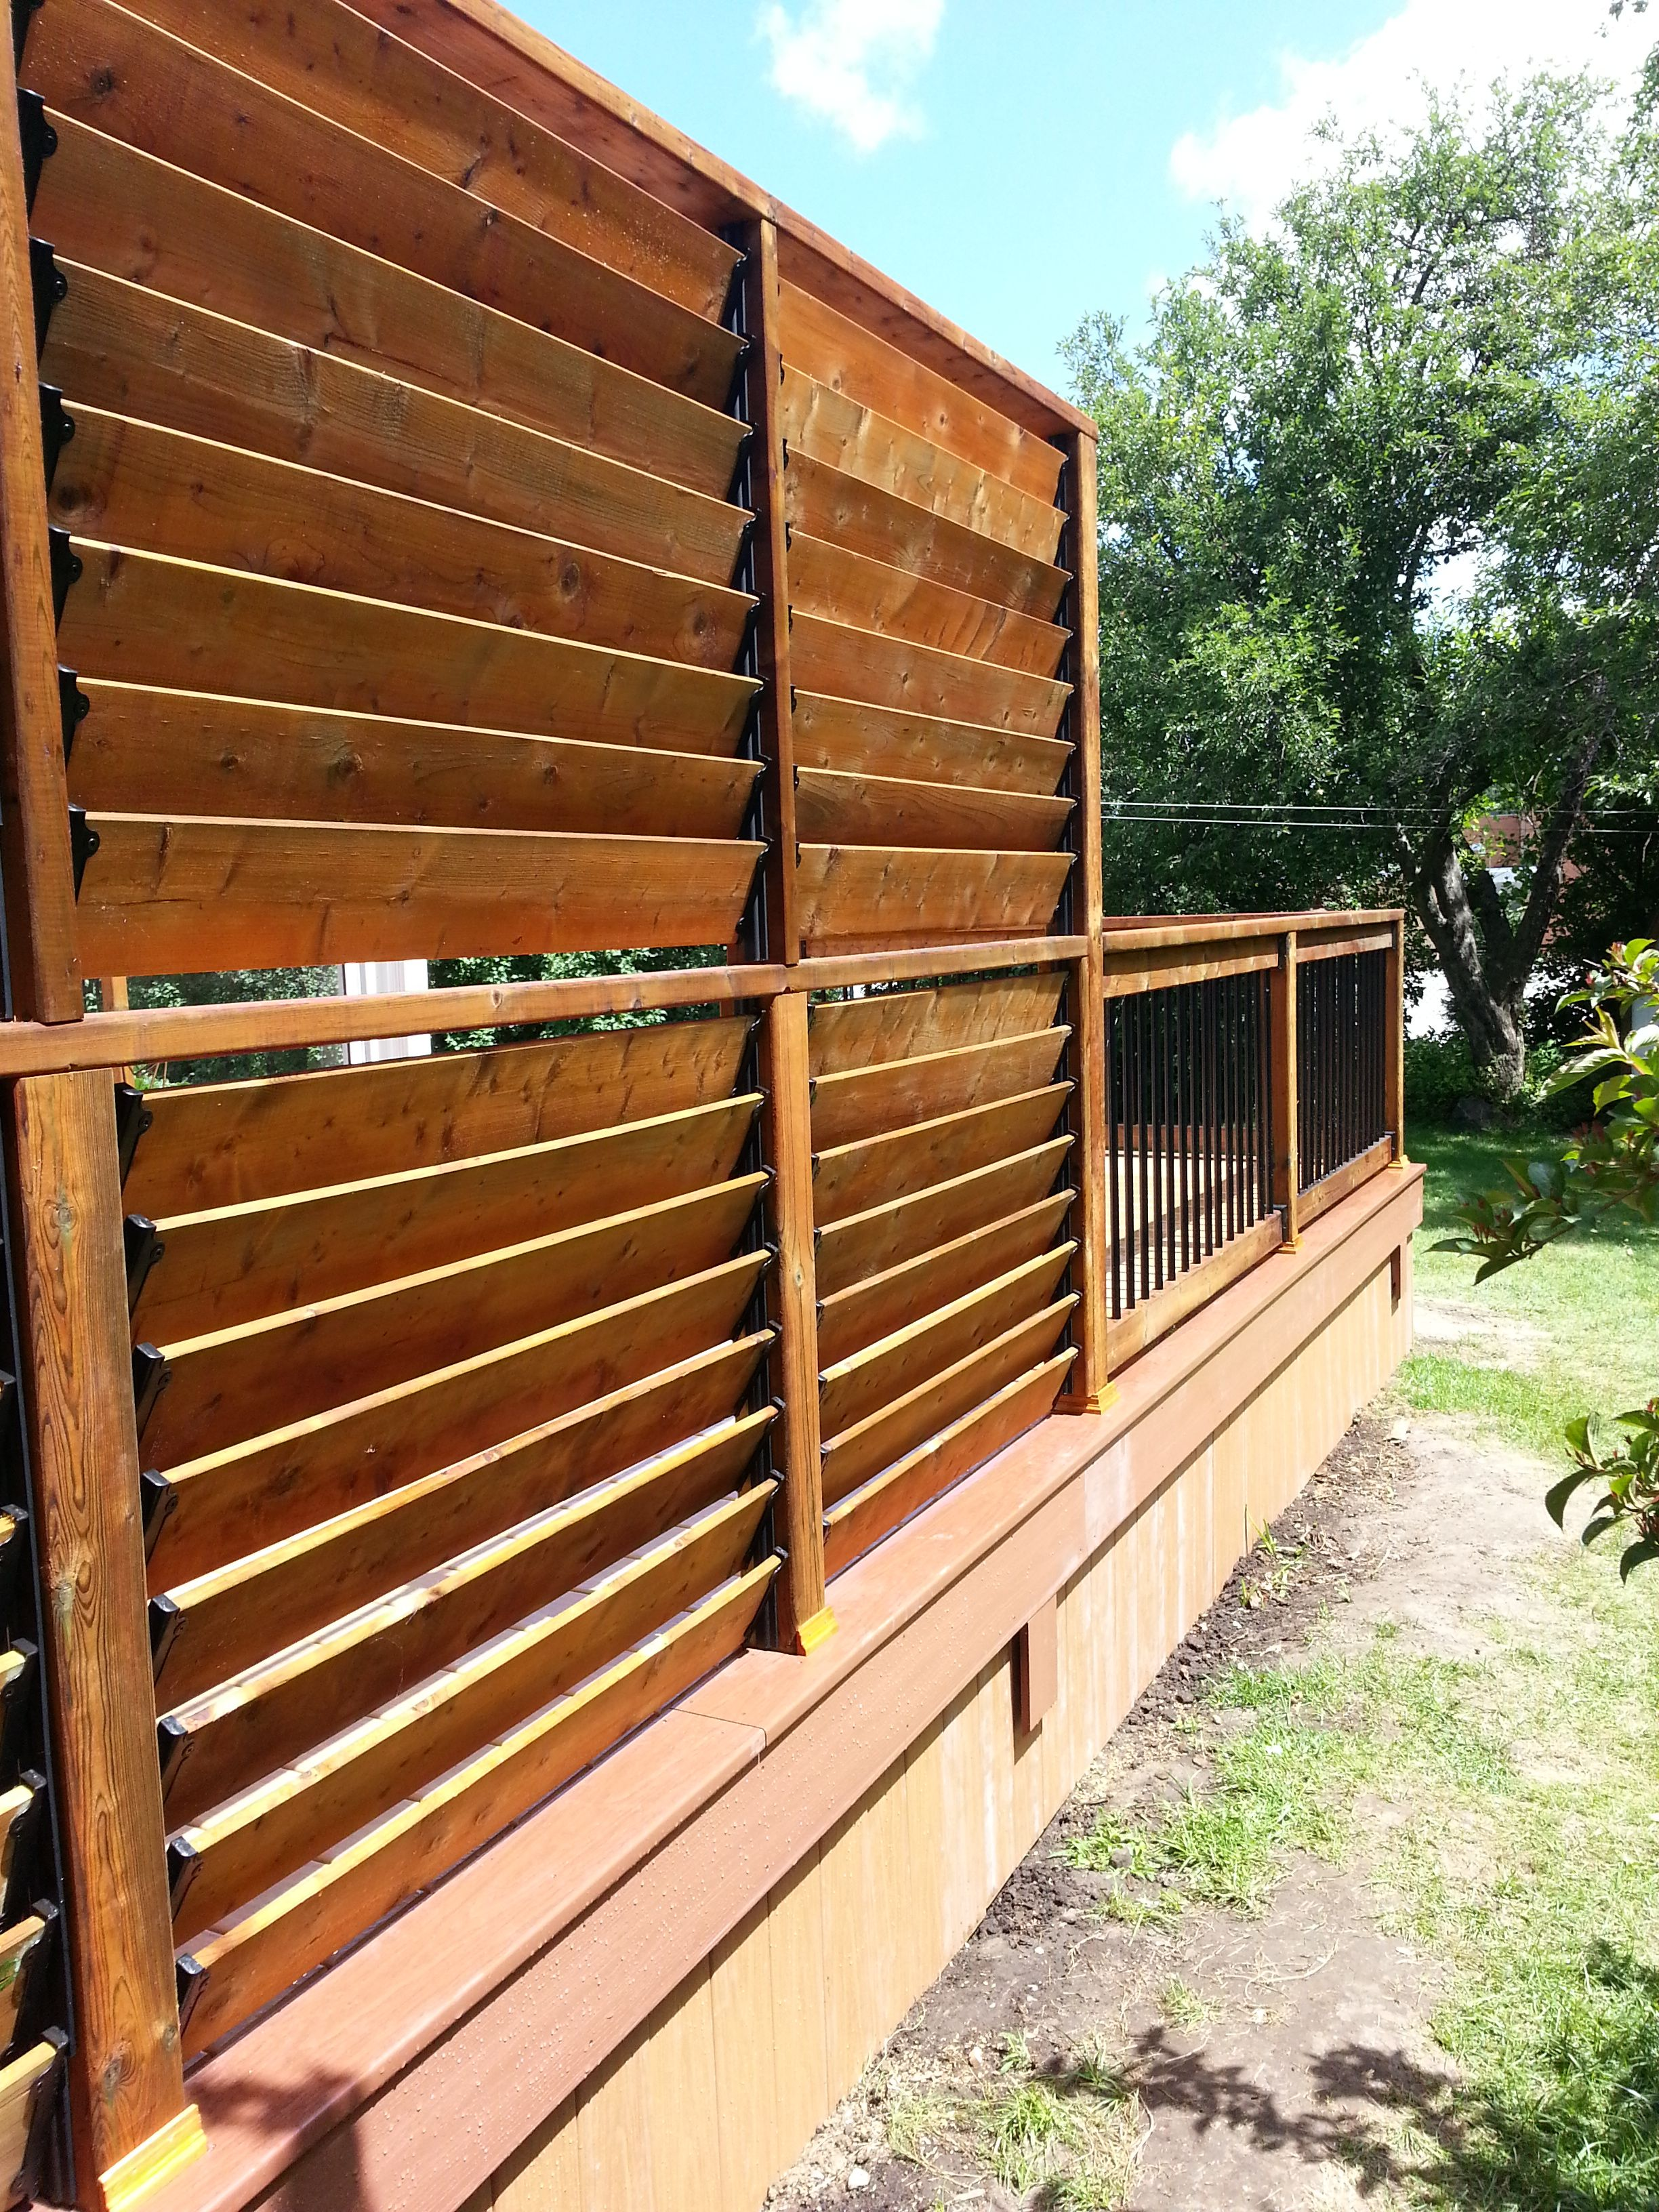 Charmant FLEXu2022fence Creation By Thommoknockers Custom Decks. Louver Extra Privacy  Deck.